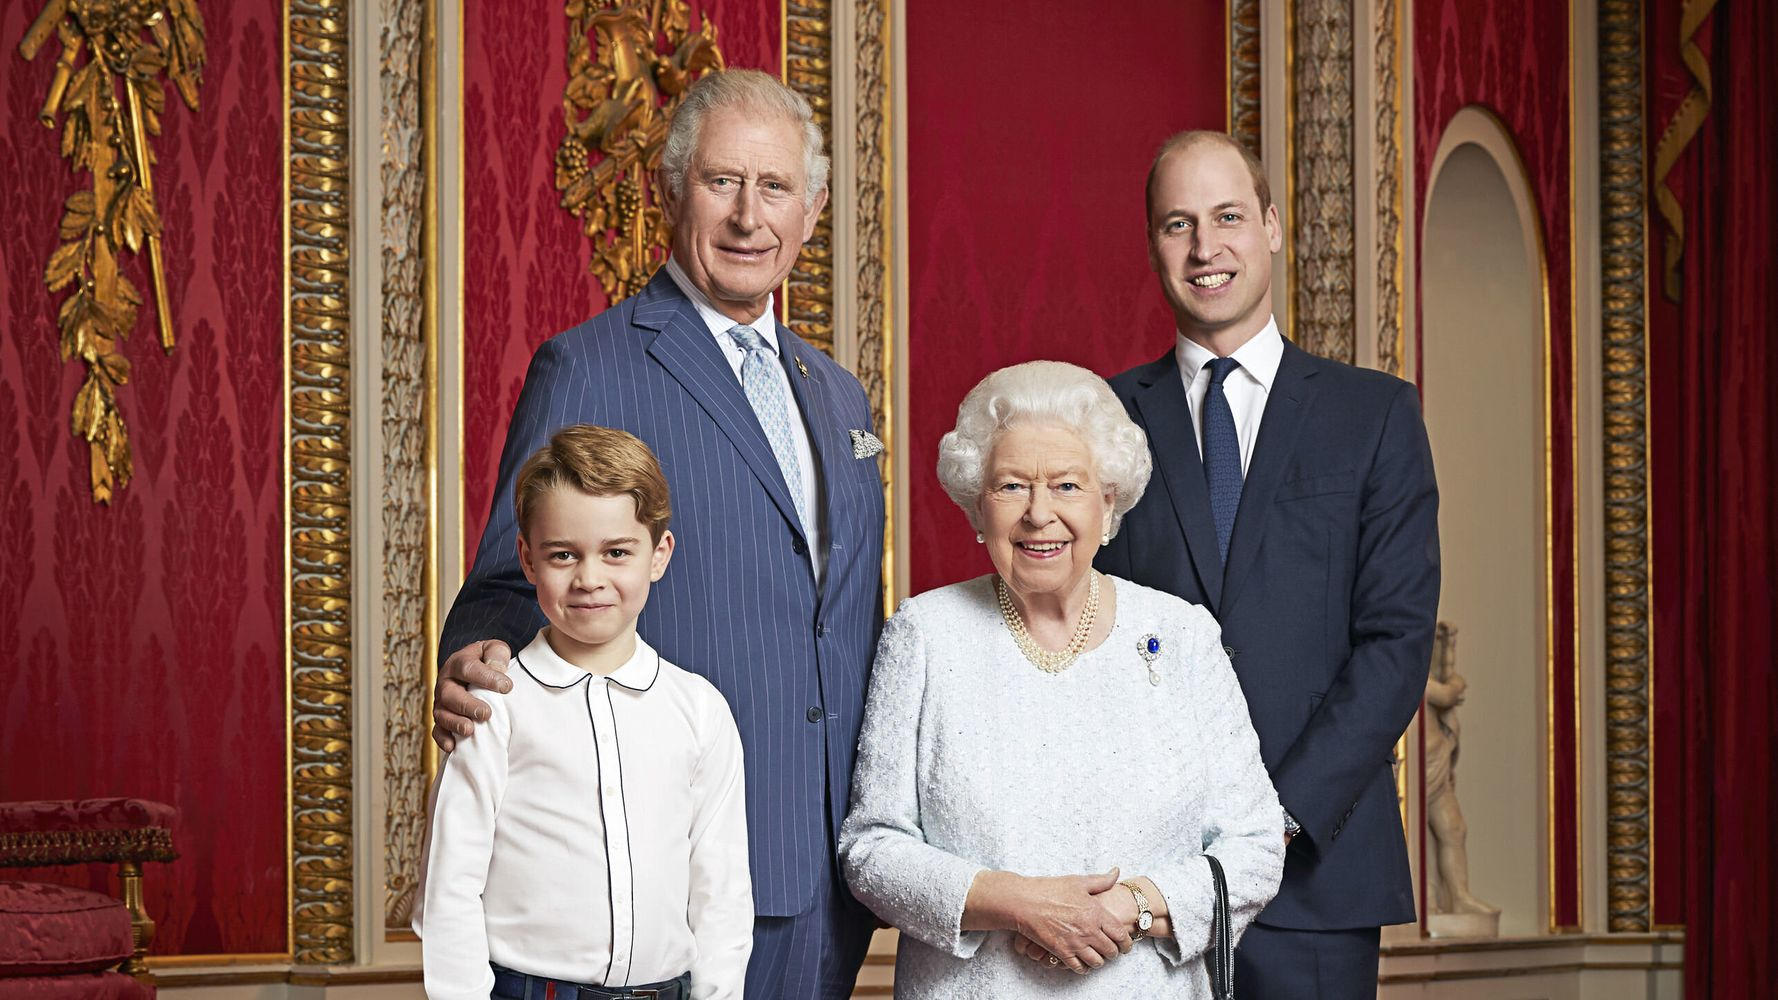 Prince George 'Grins' Alongside Prince William, Prince Charles And The Queen In New Portrait